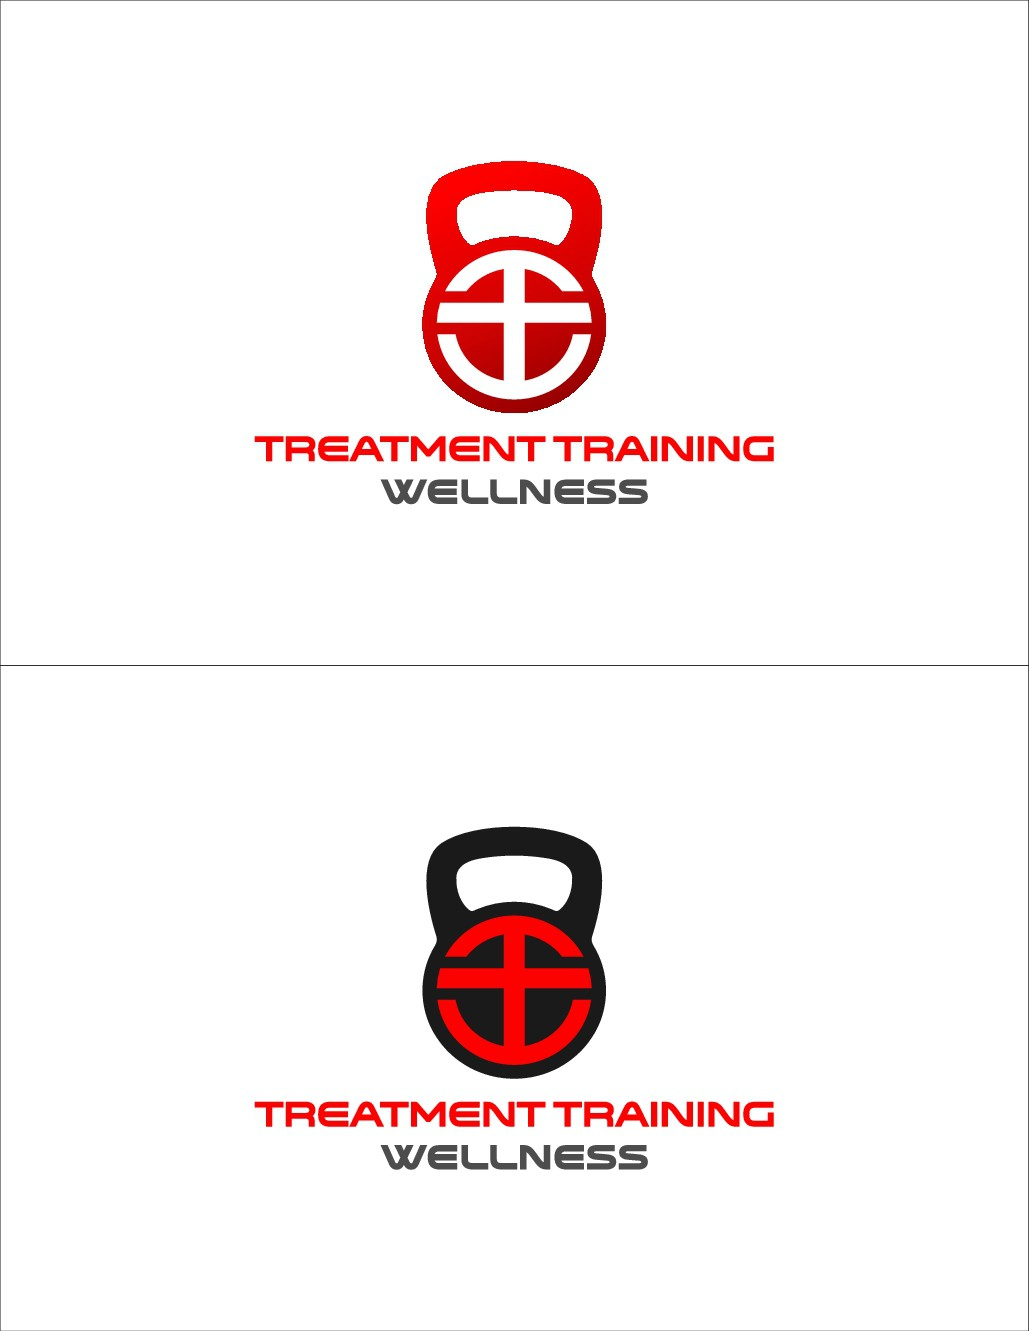 New logo for personal training/massage company